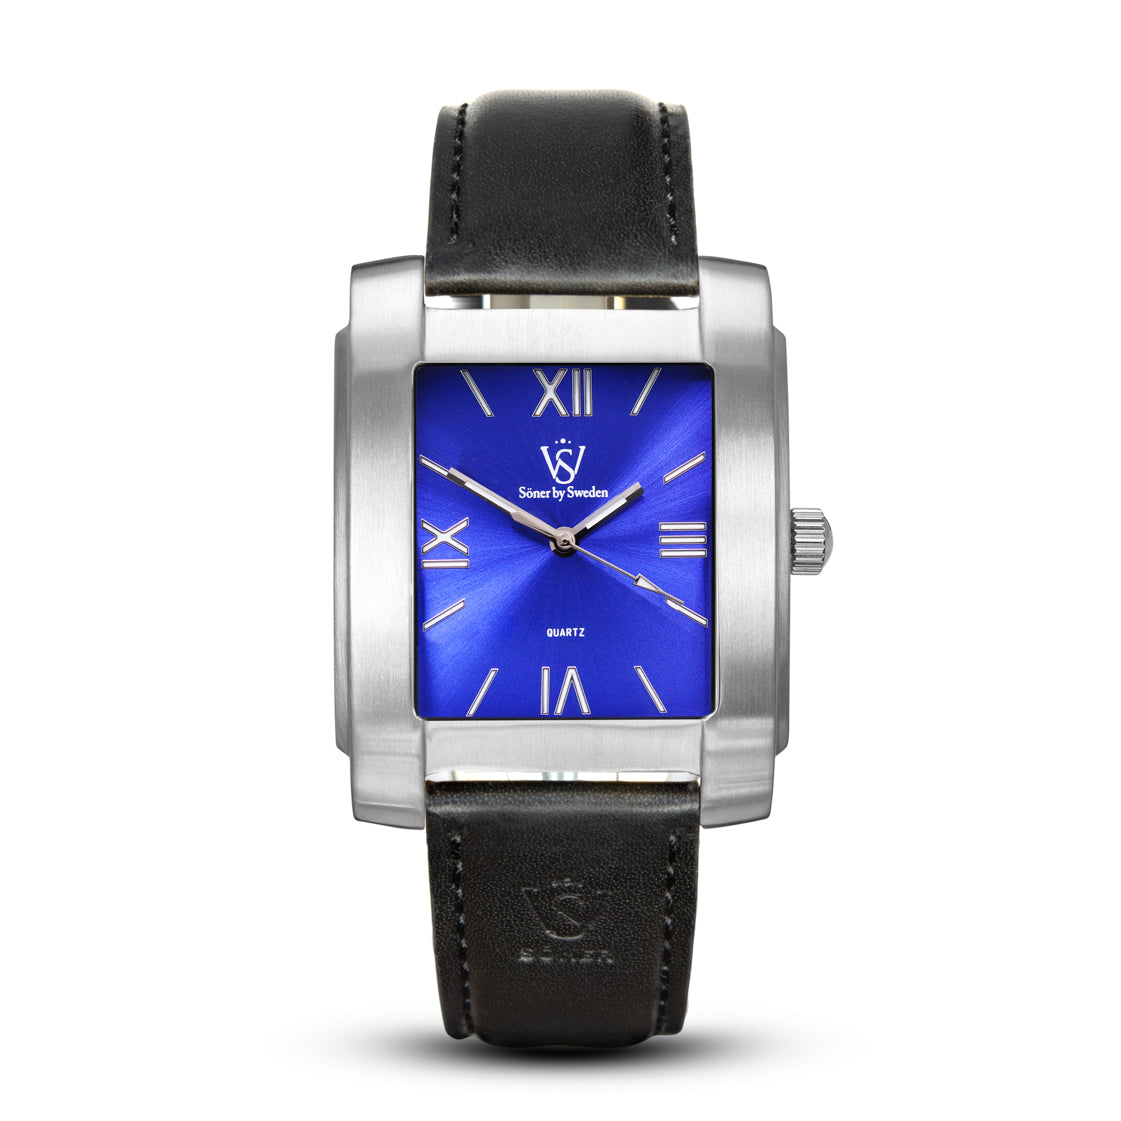 SQUARE MEN'S WATCH - LEGACY E Brushed steel - Blue dial